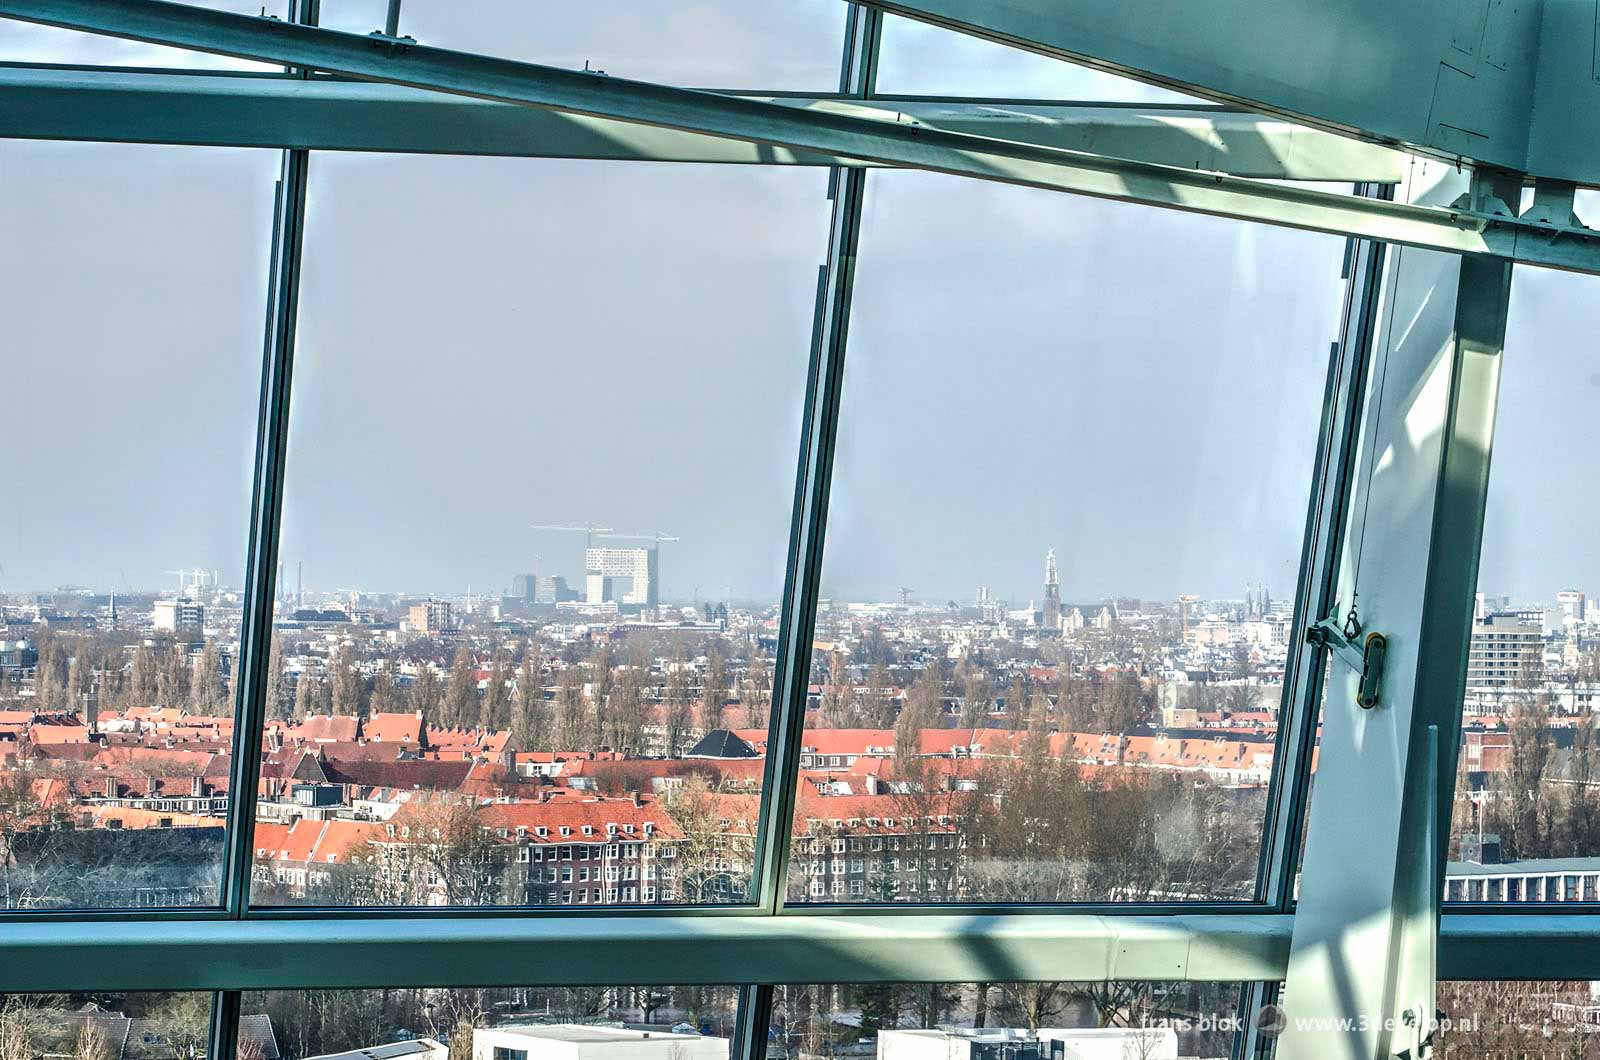 View of the Amsterdam skyline including Pontsteiger building and Westerkerk tower, from building The Edge in the Zuidas district